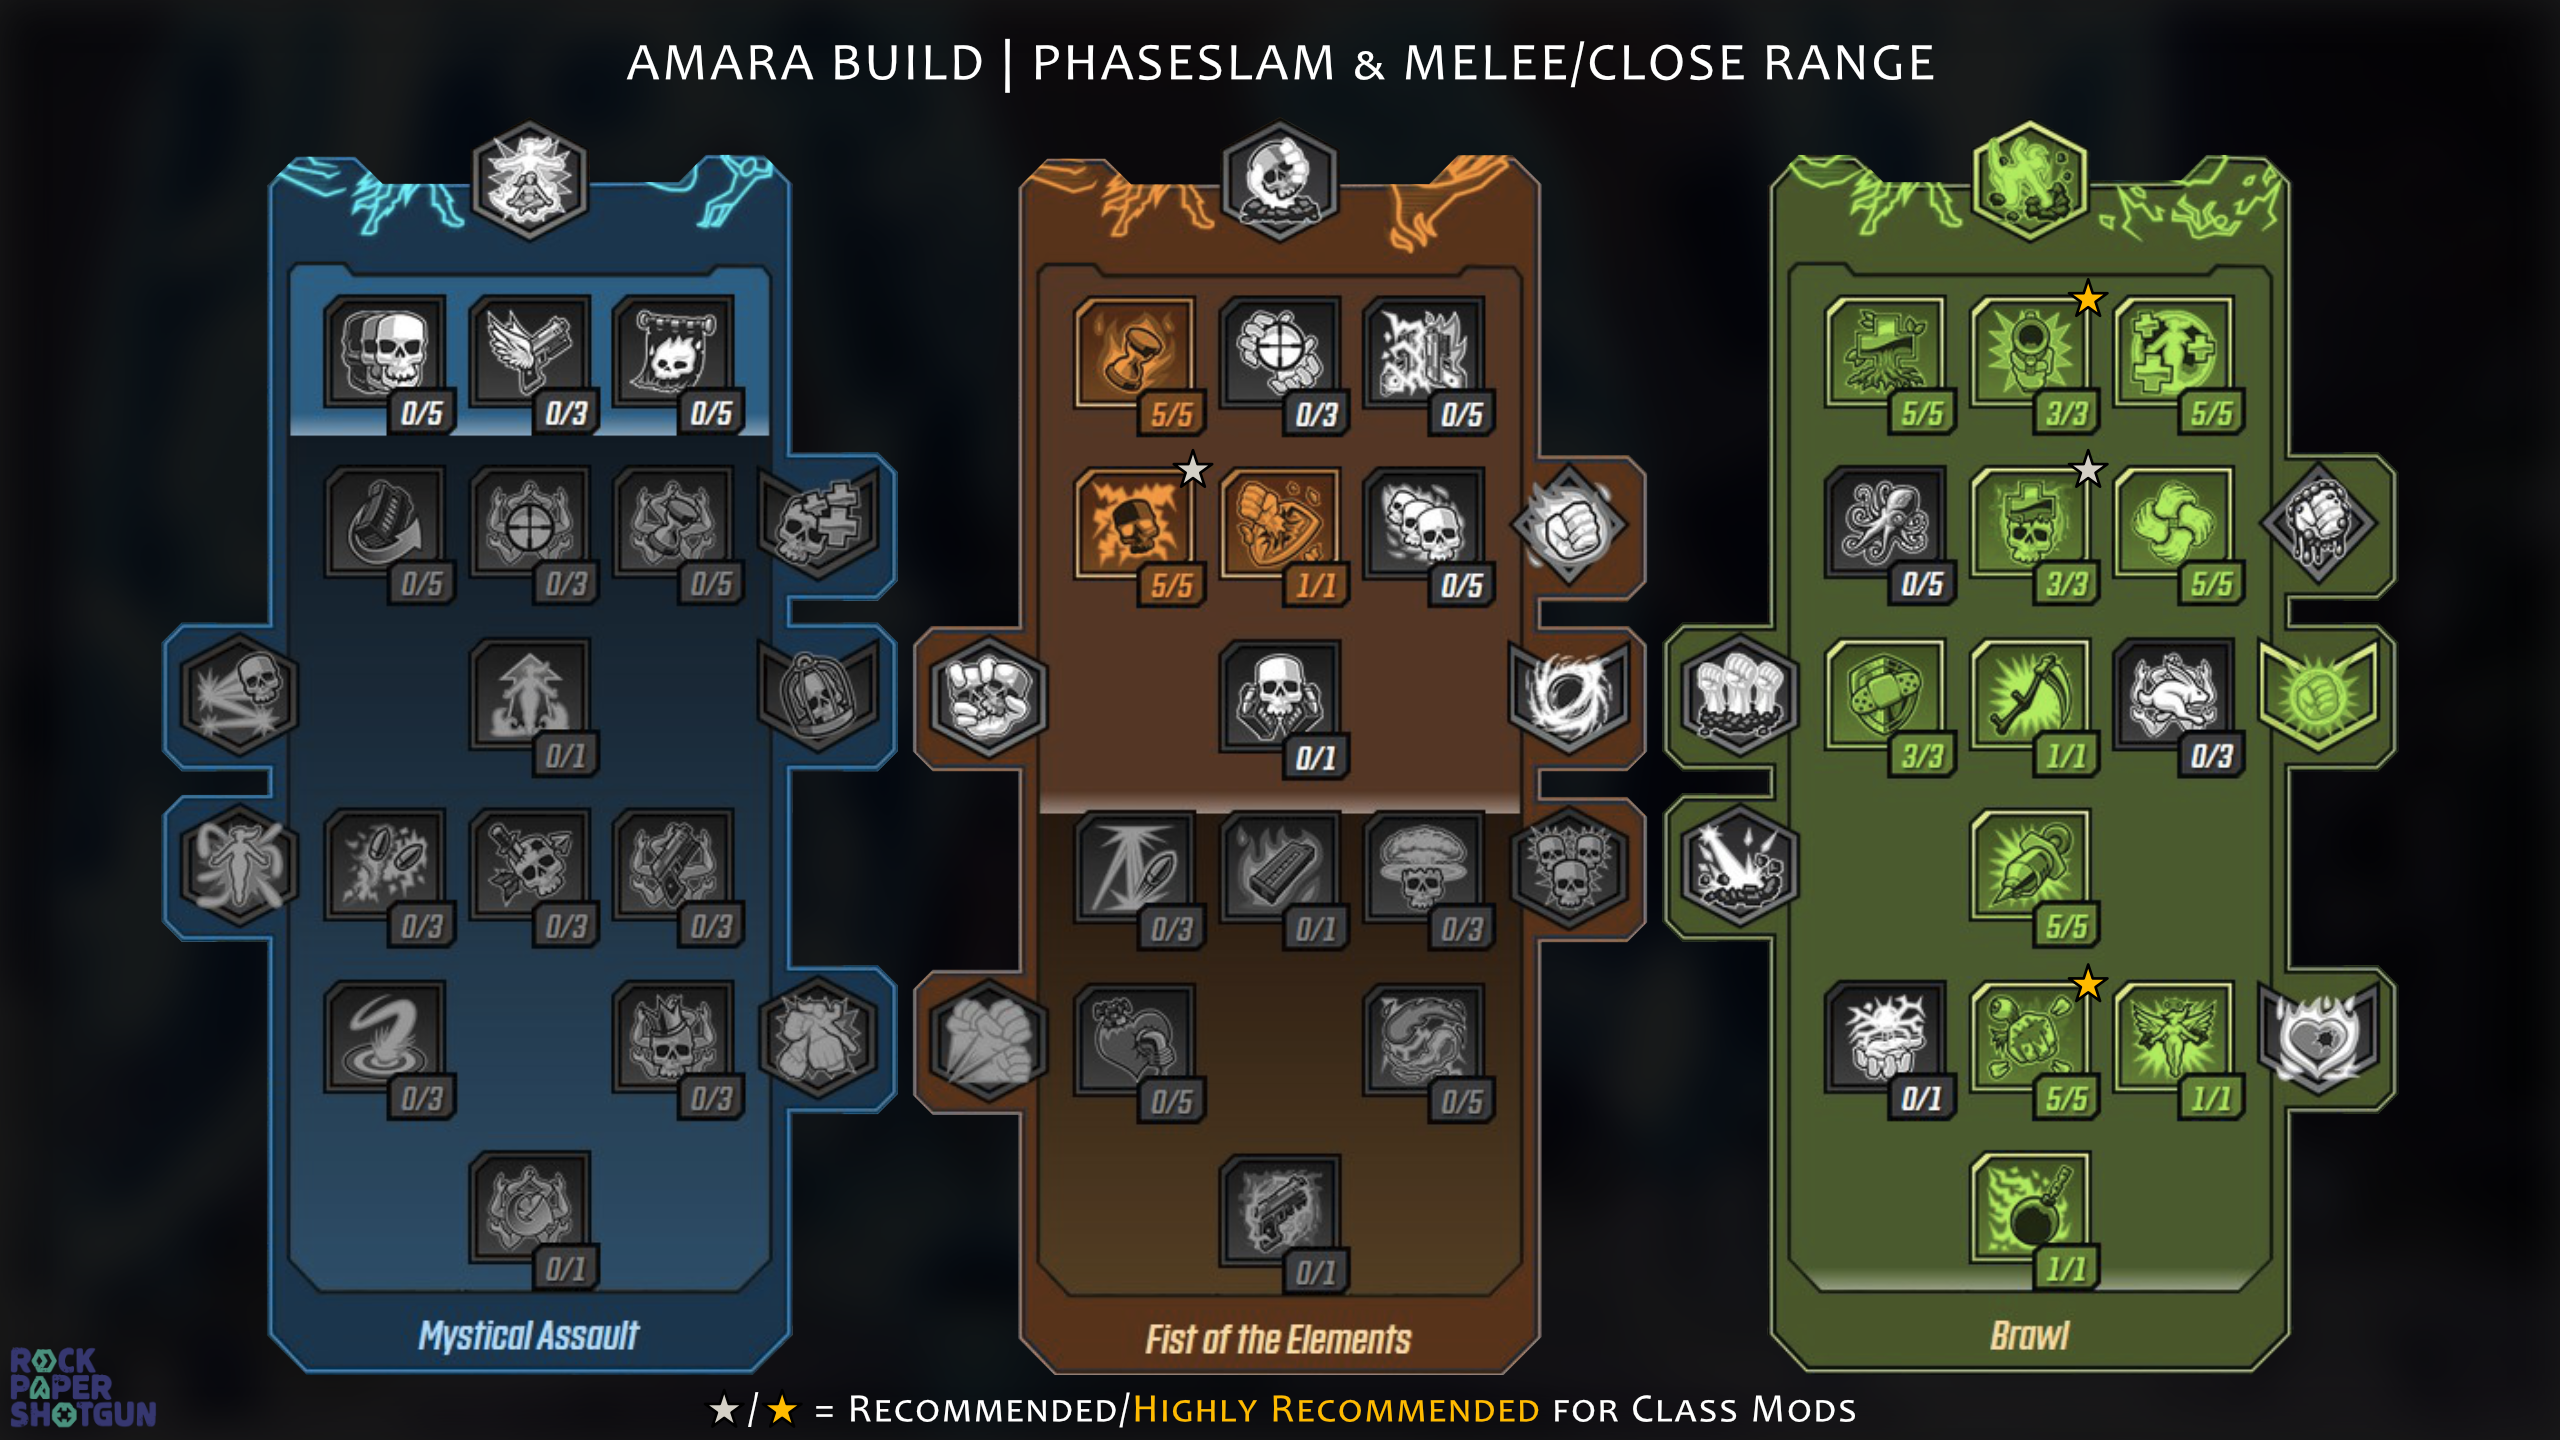 Borderlands 3 Amara build - Phaseslam & Melee/Close Range